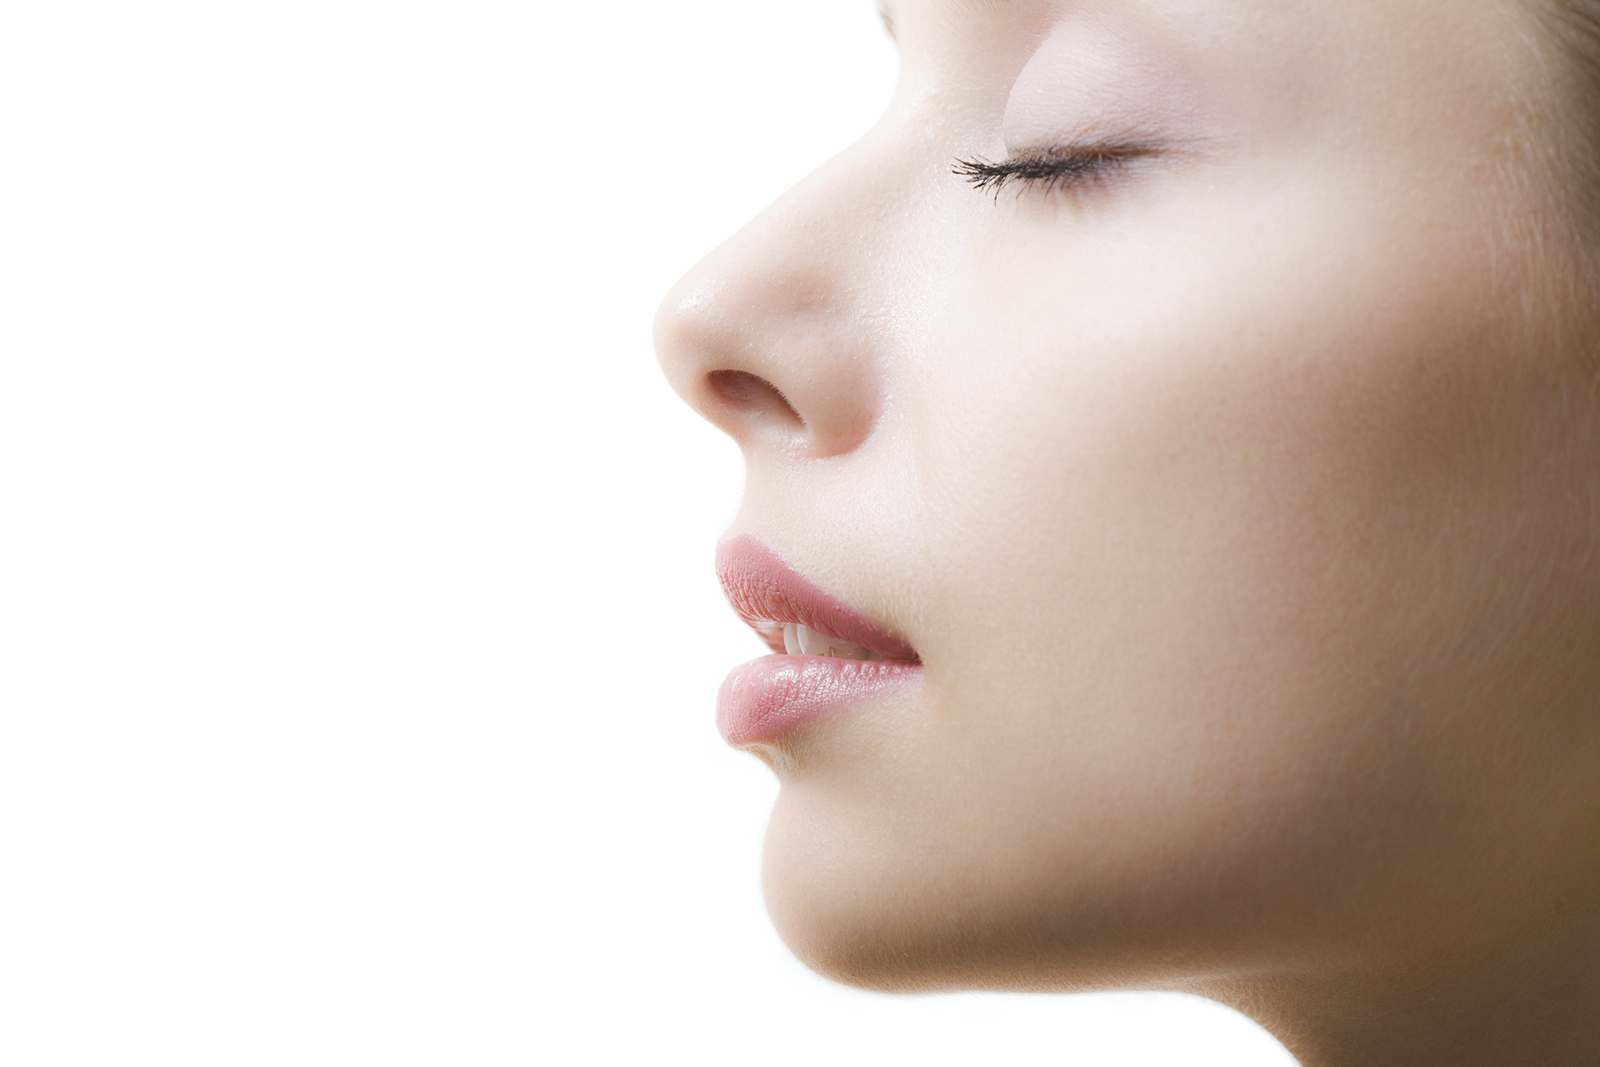 Profile of feminine face with closed eyes and make-up